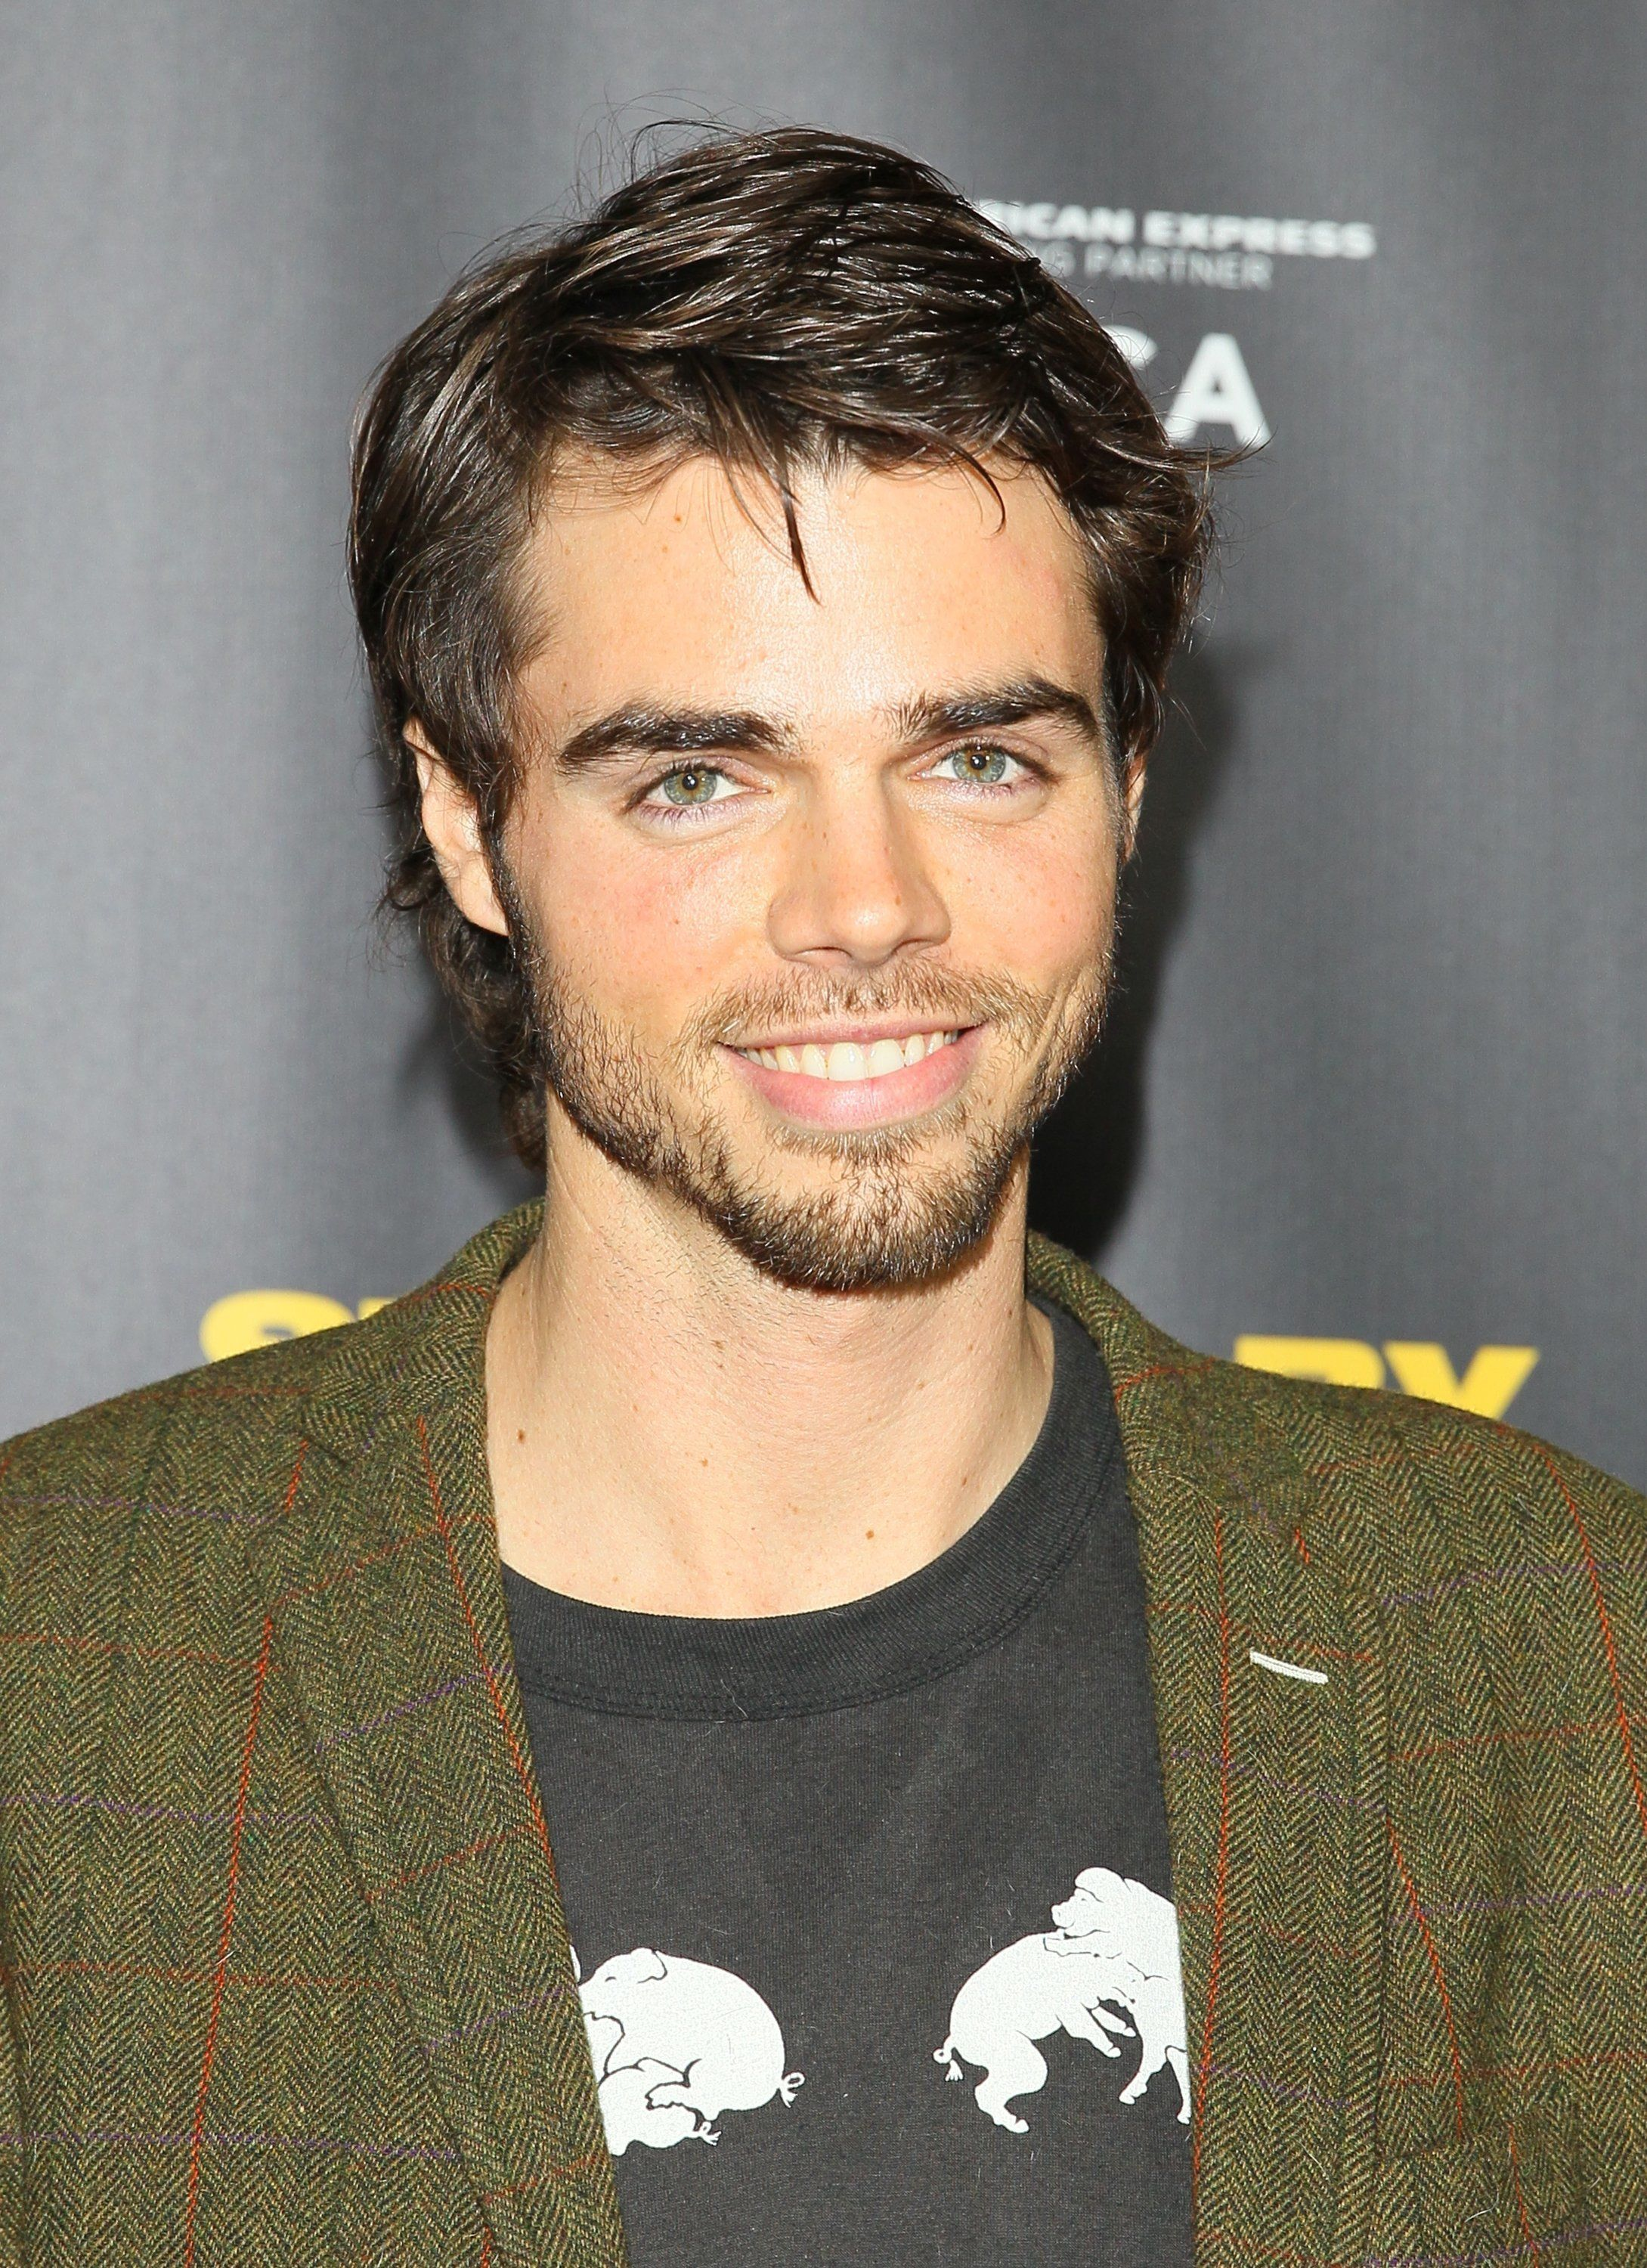 LOS ANGELES, CA - JANUARY 06: Reid Ewing attends the 'Struck By Lighting' premiere held at Mann Chinese 6 on January 6, 2013 in Los Angeles, California. (Photo by JB Lacroix/WireImage)